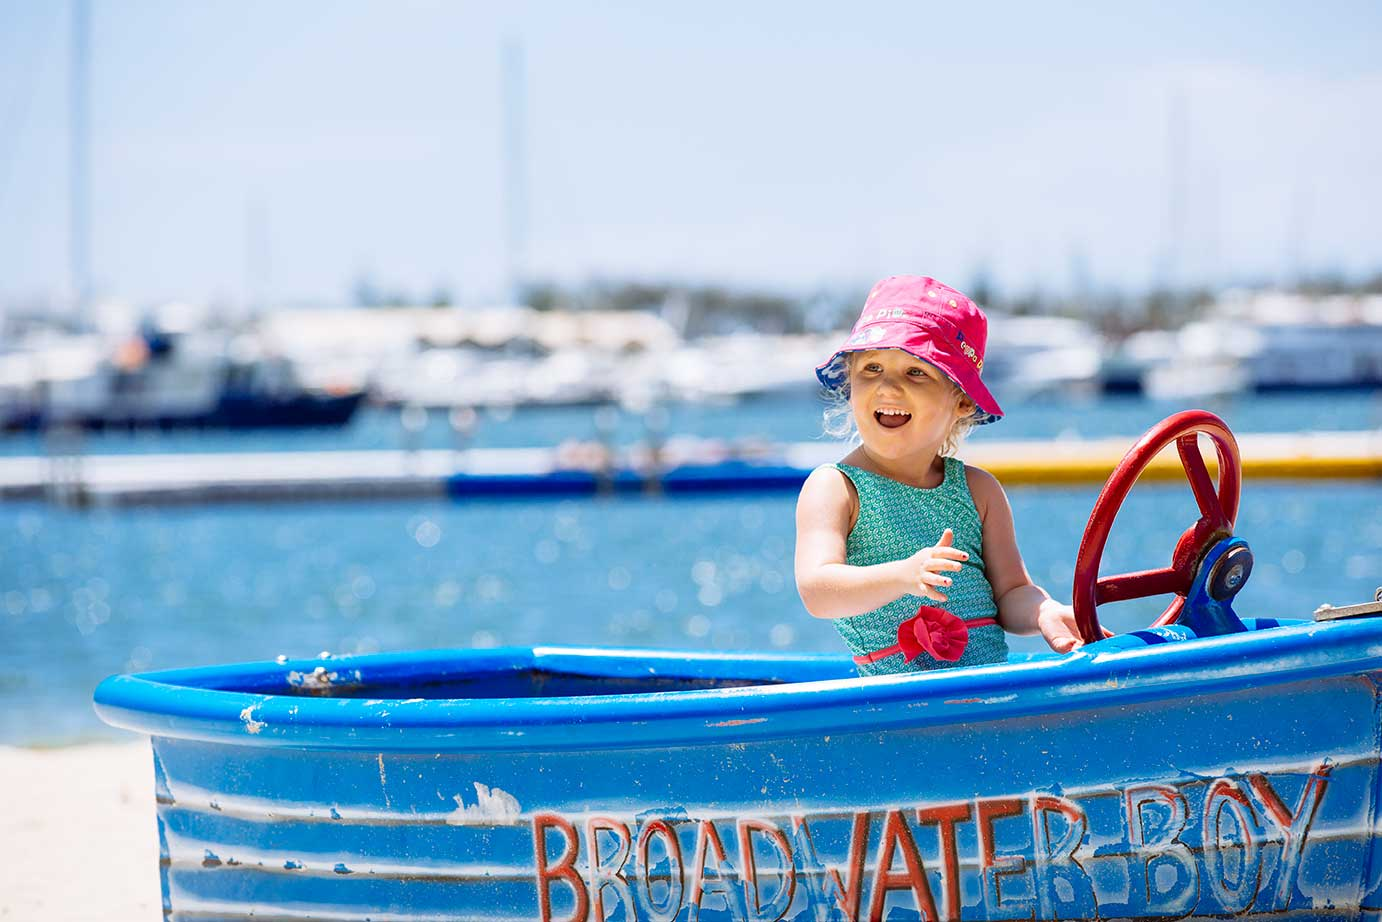 There's hours of play at the Broadwater Parklands